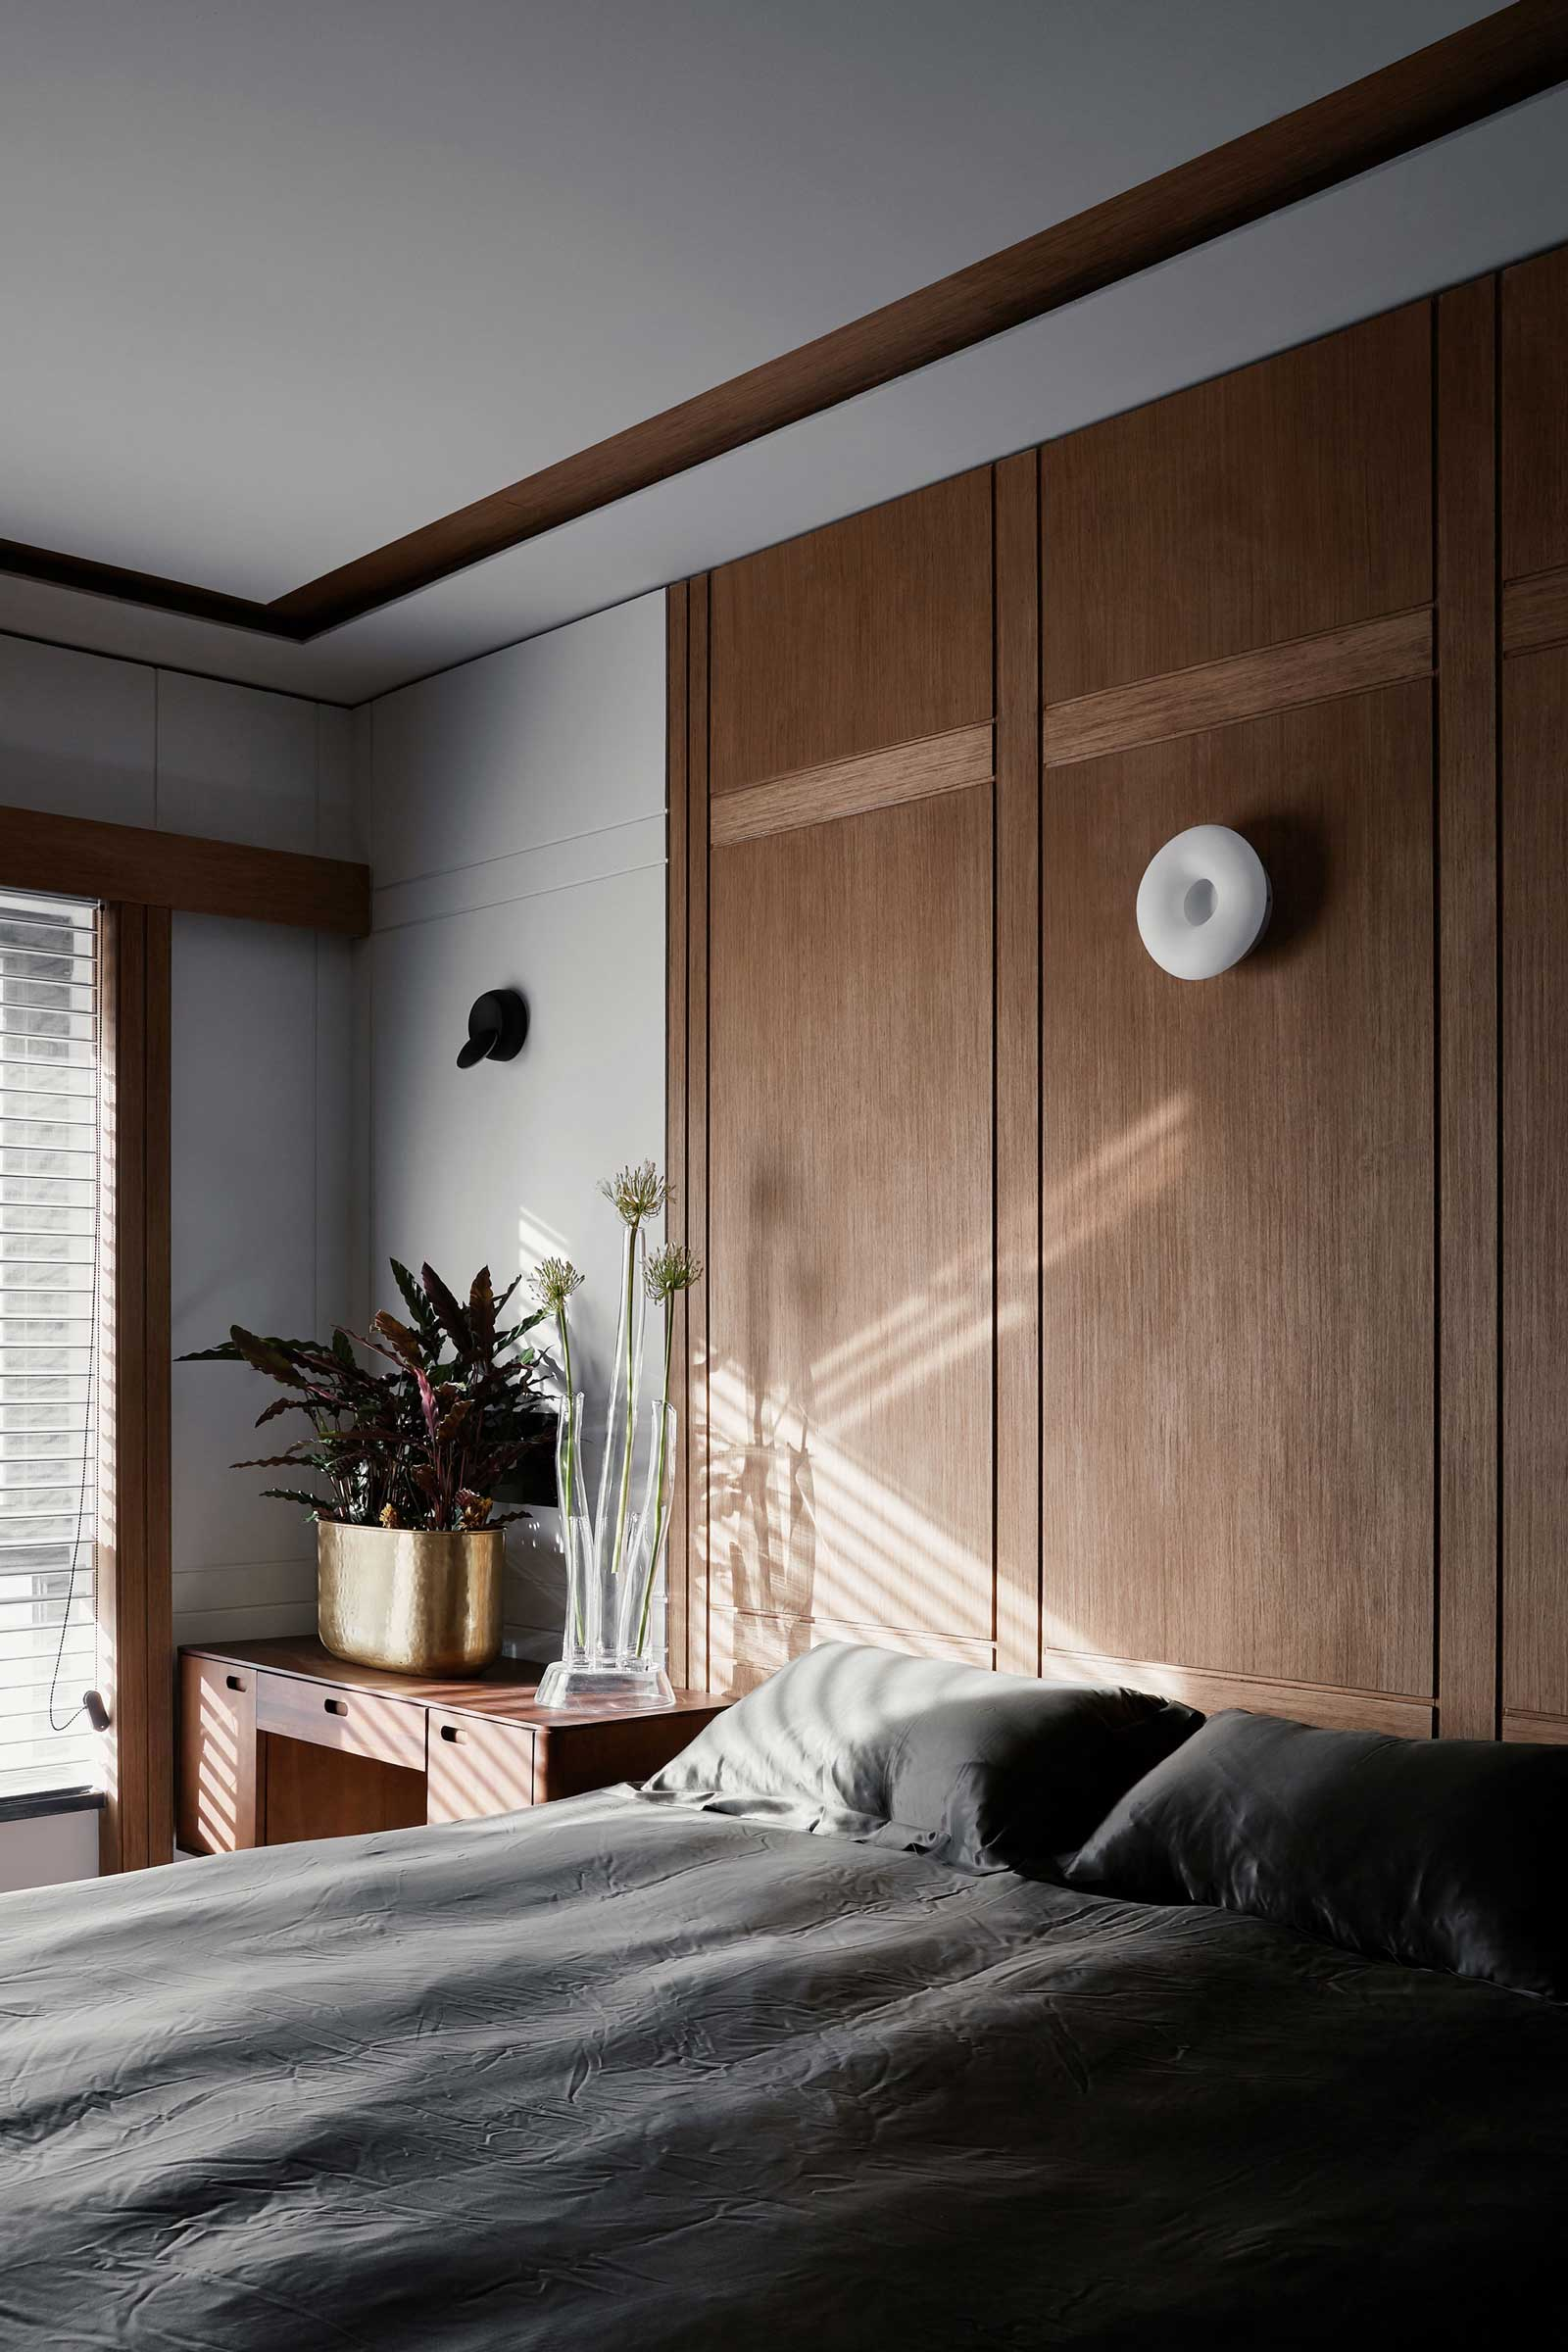 lane-house-ARCHISTRY-nolan-chao-06-bed-room.jpg